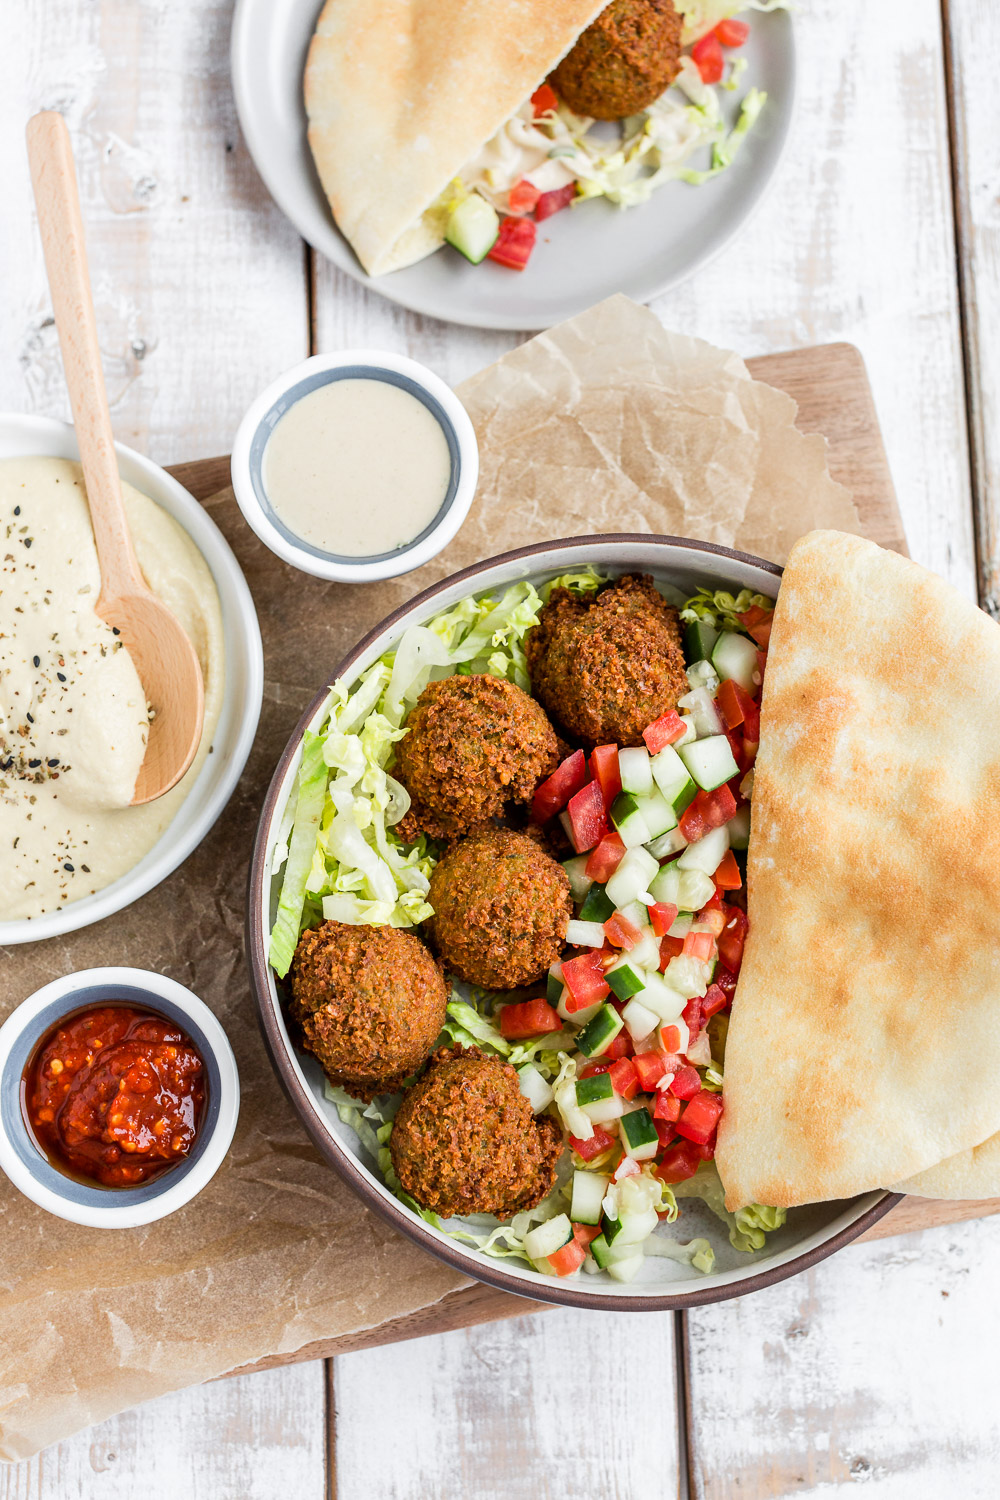 falafel with pitas, israeli salad, and hummus